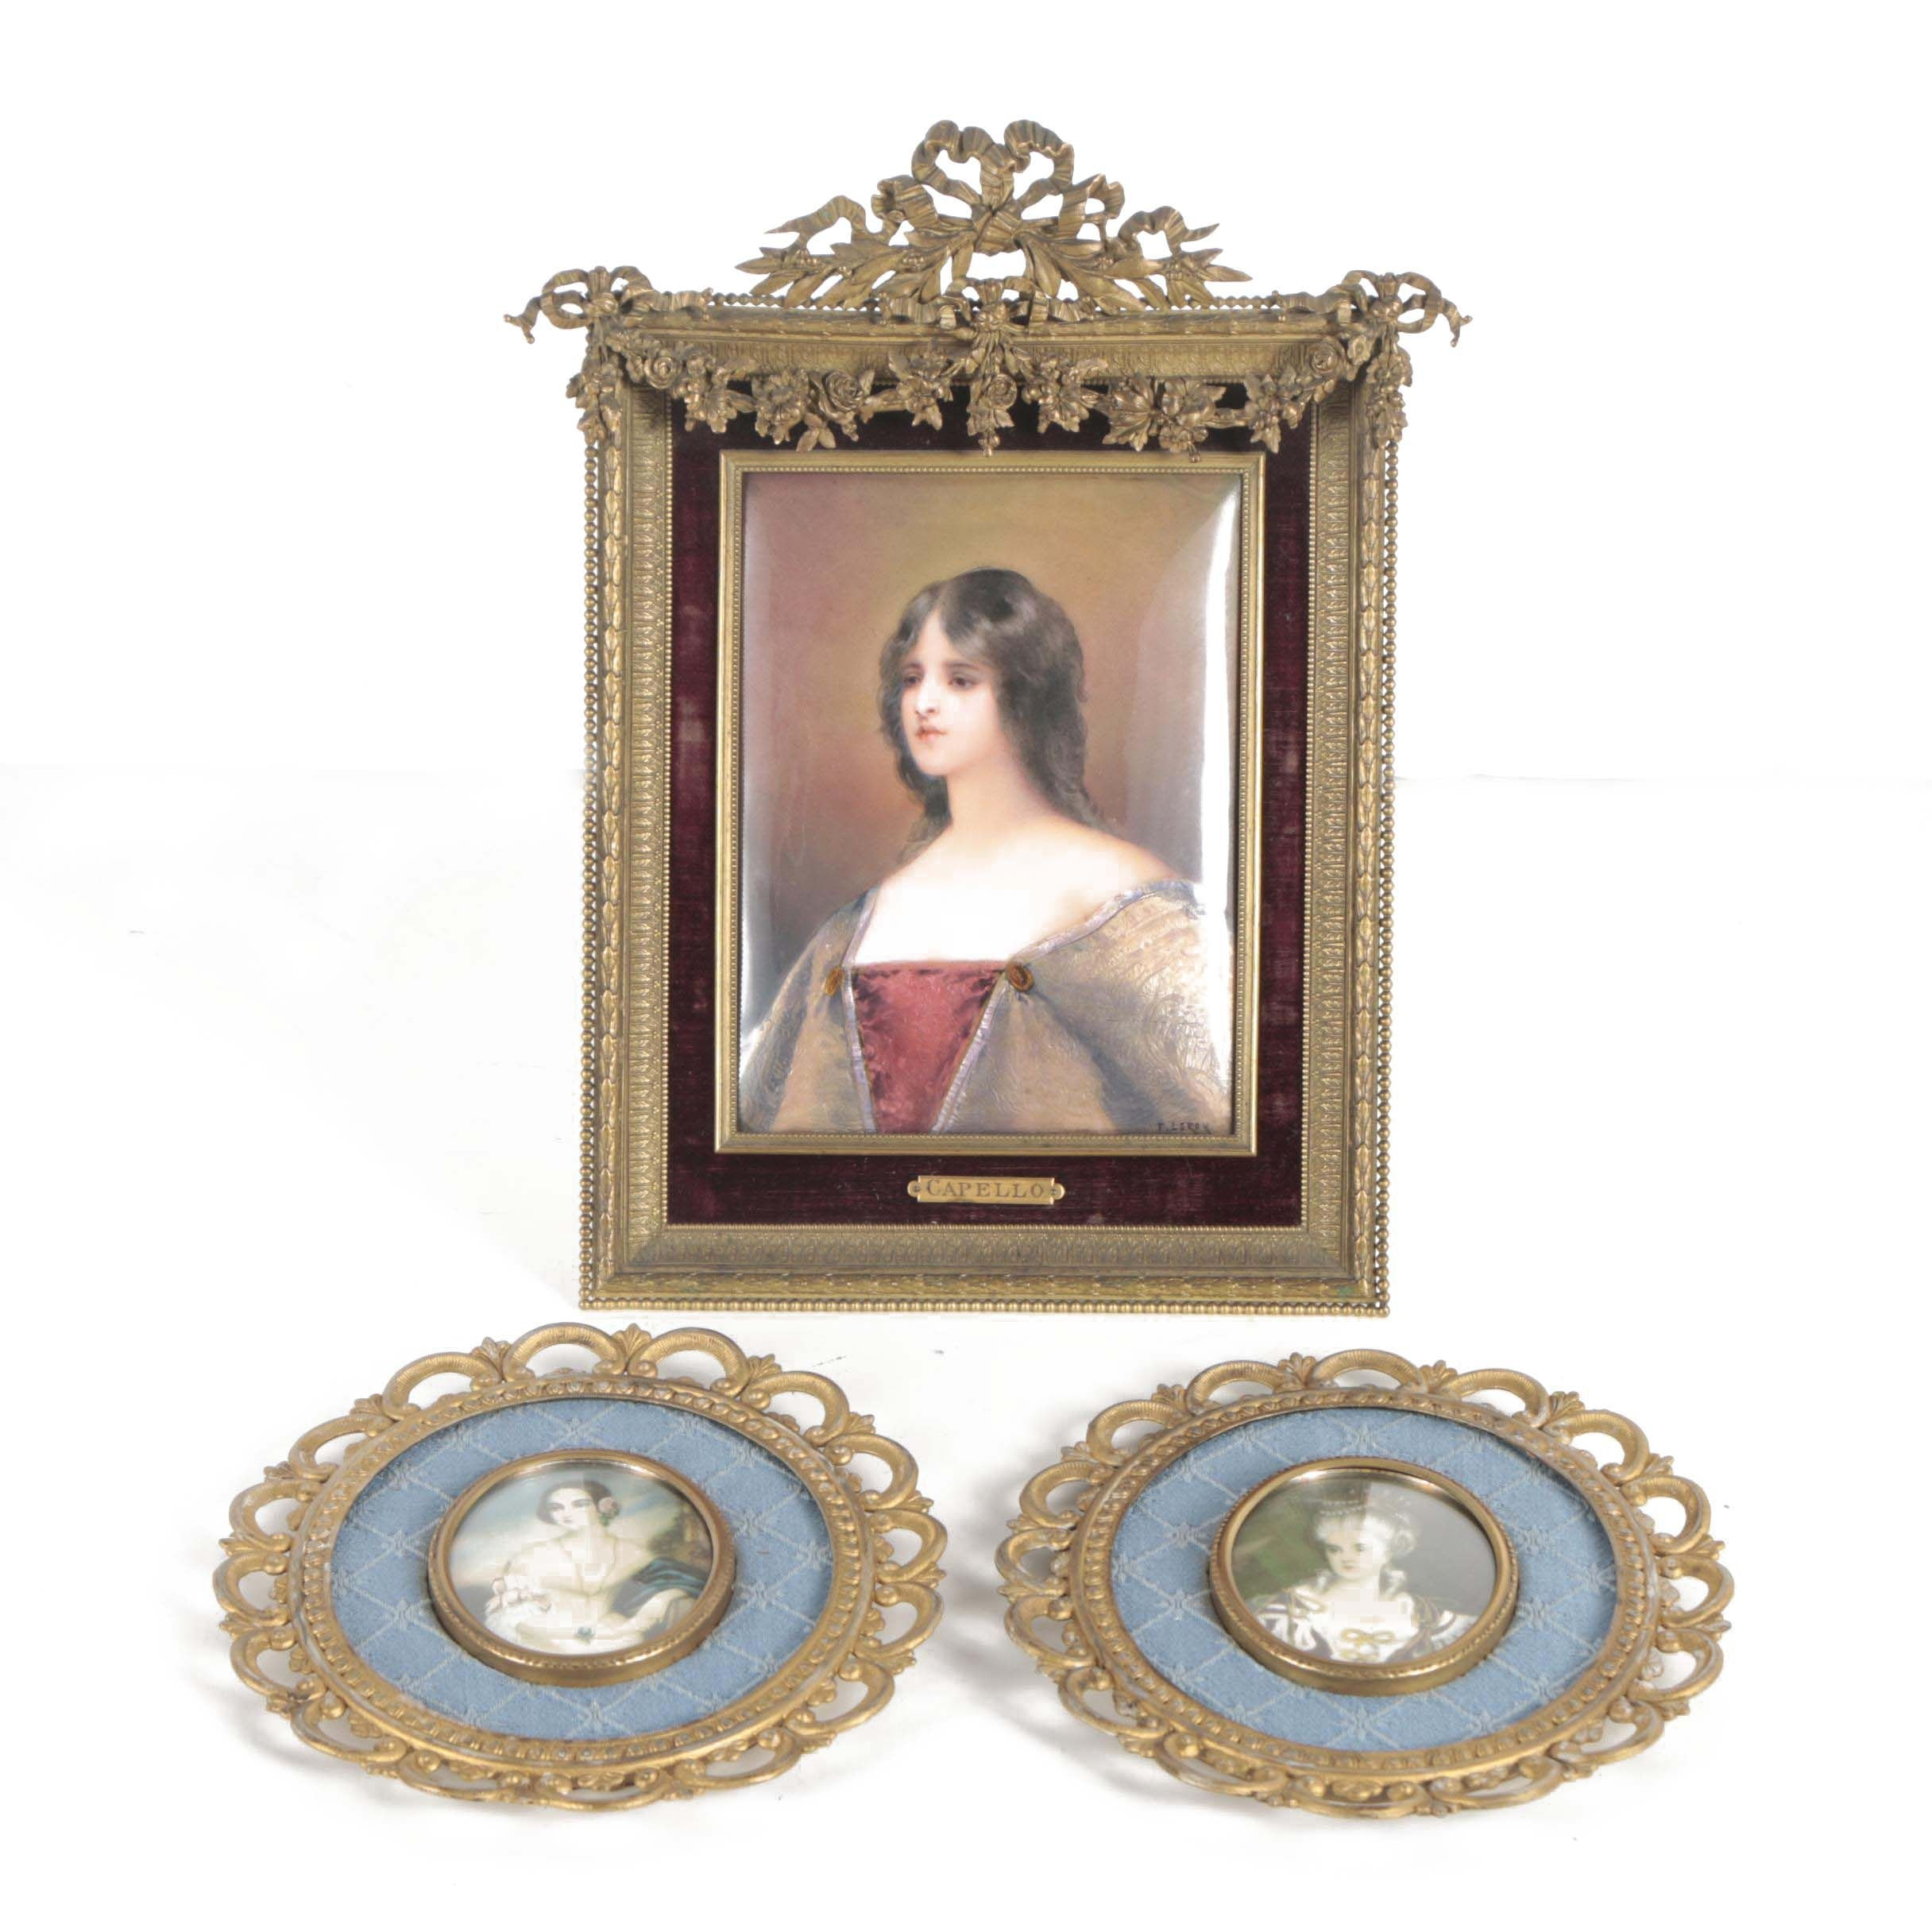 Vintage Enamel and Offset Lithograph Portraits